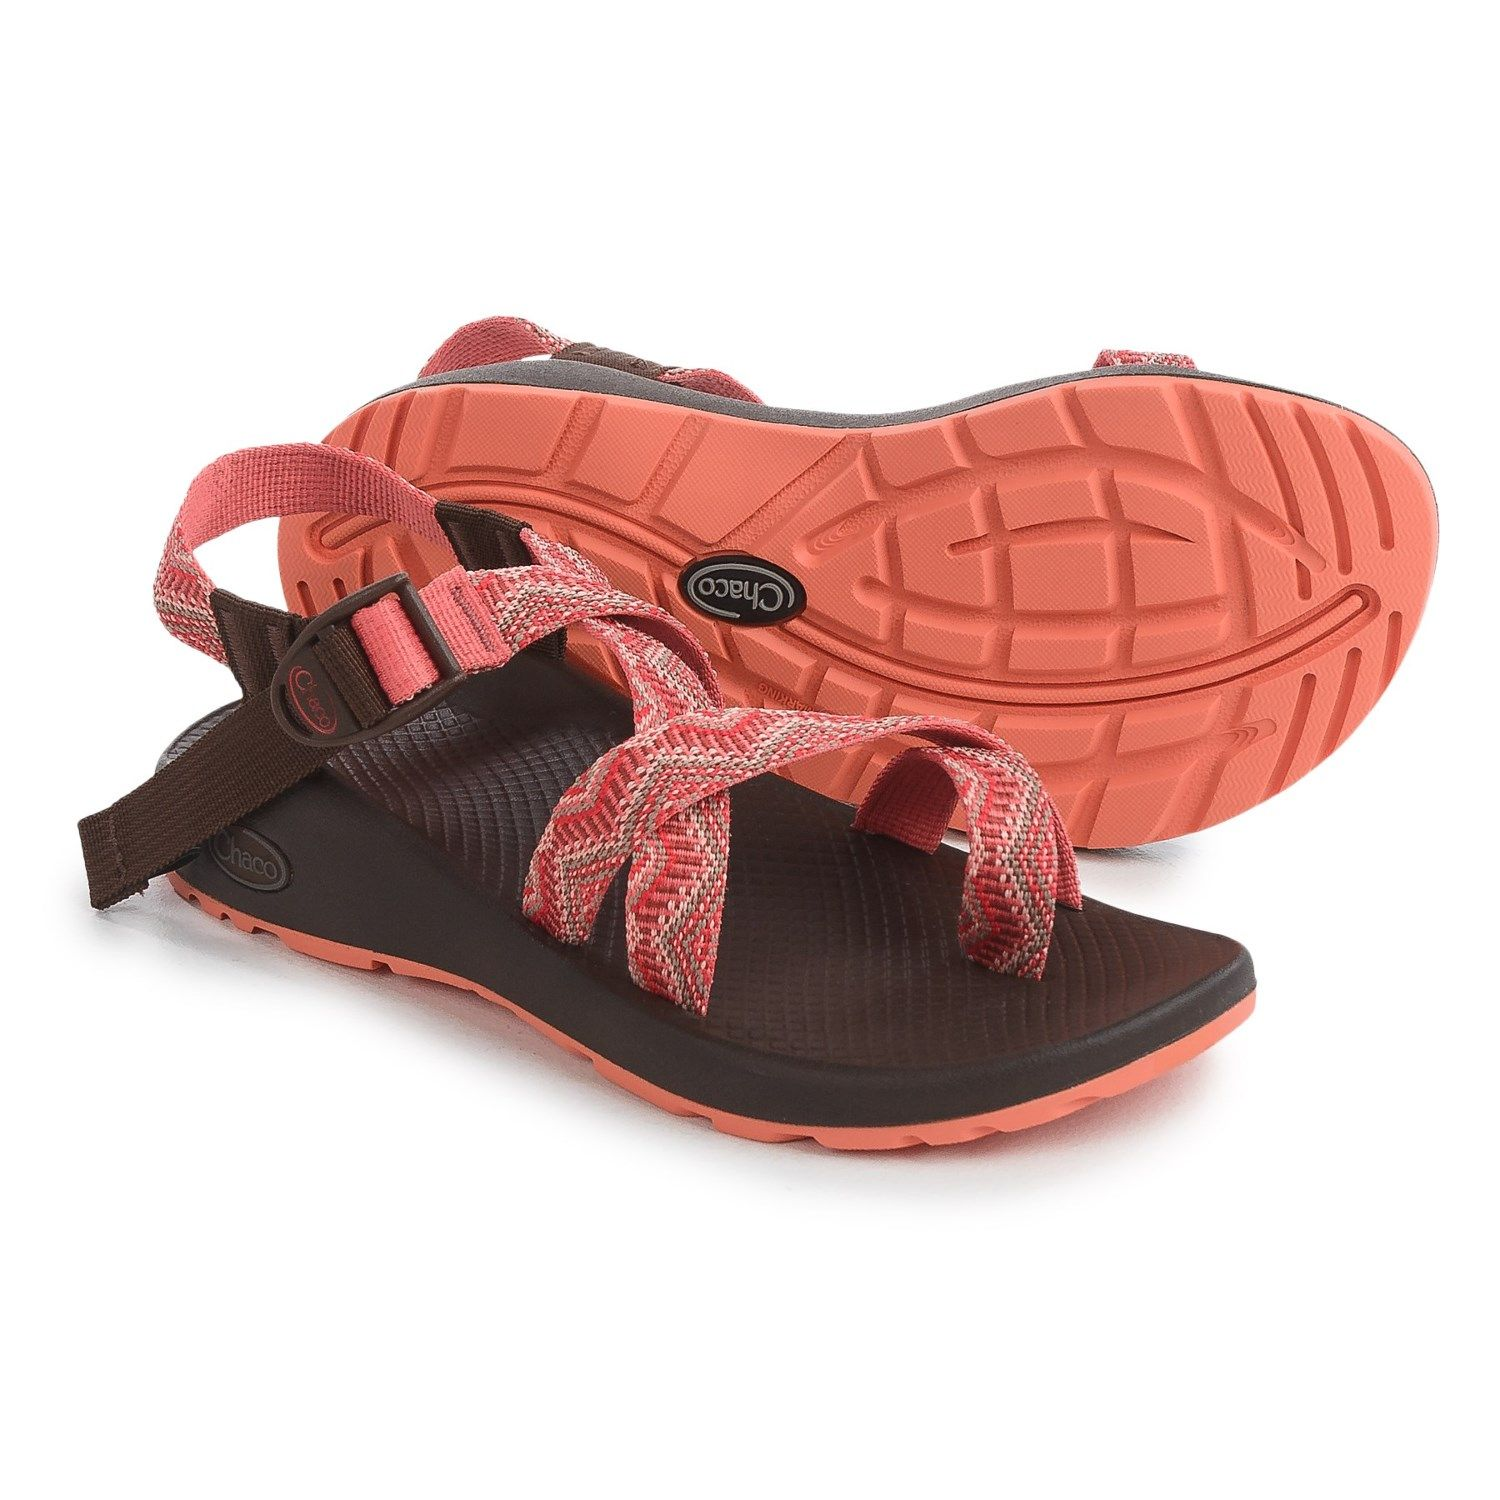 c42bad947c46 Chaco Z 2® Classic Sport Sandals (For Women)